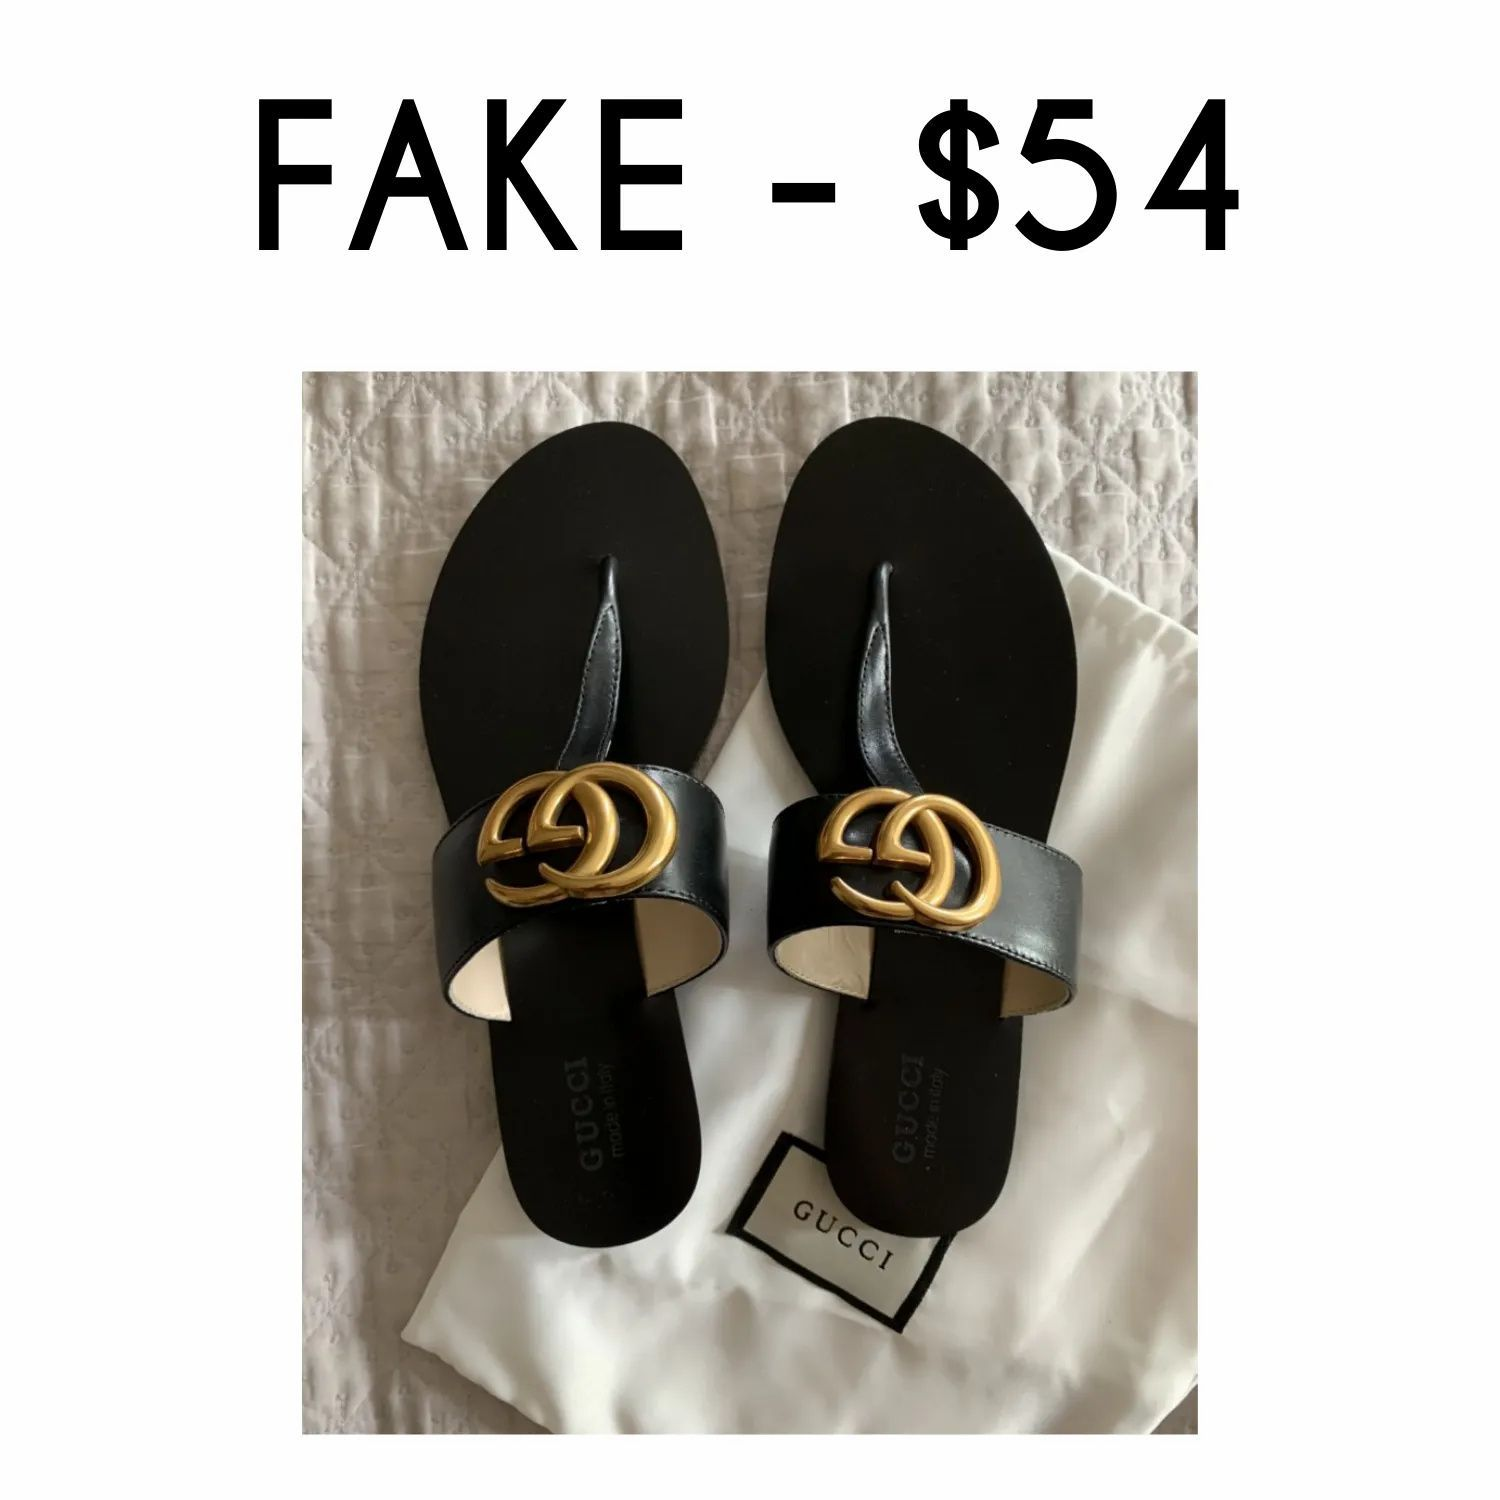 How To Successfully Buy Fake Designer